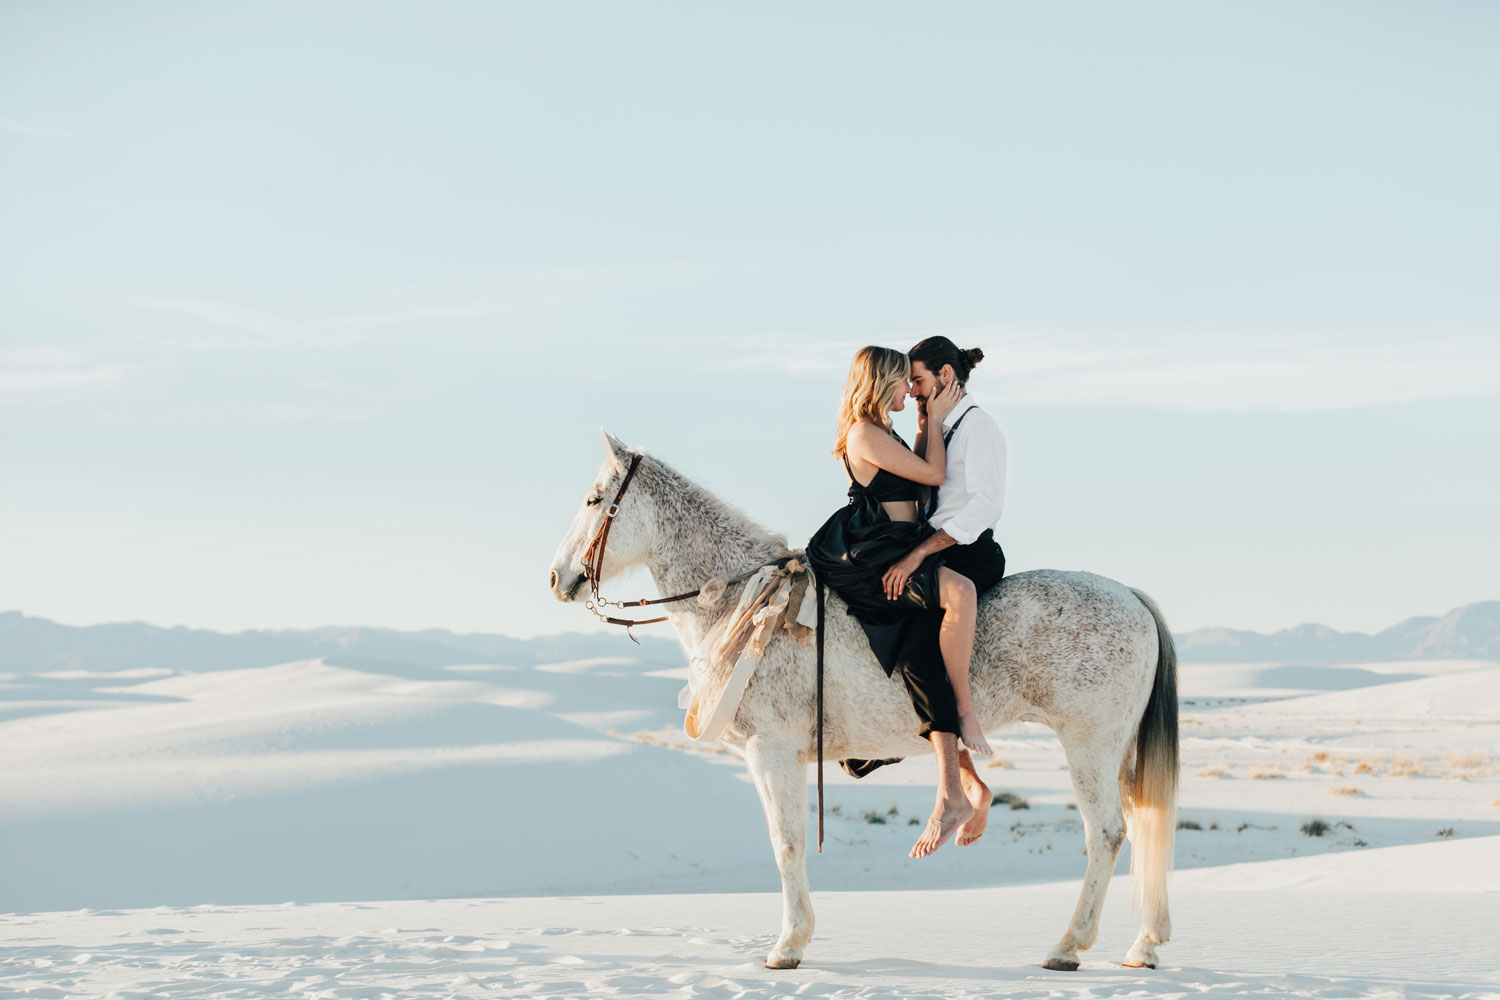 engagement photo shoot at White Sands National Monument in New Mexico engagement photos couple barefoot on horse